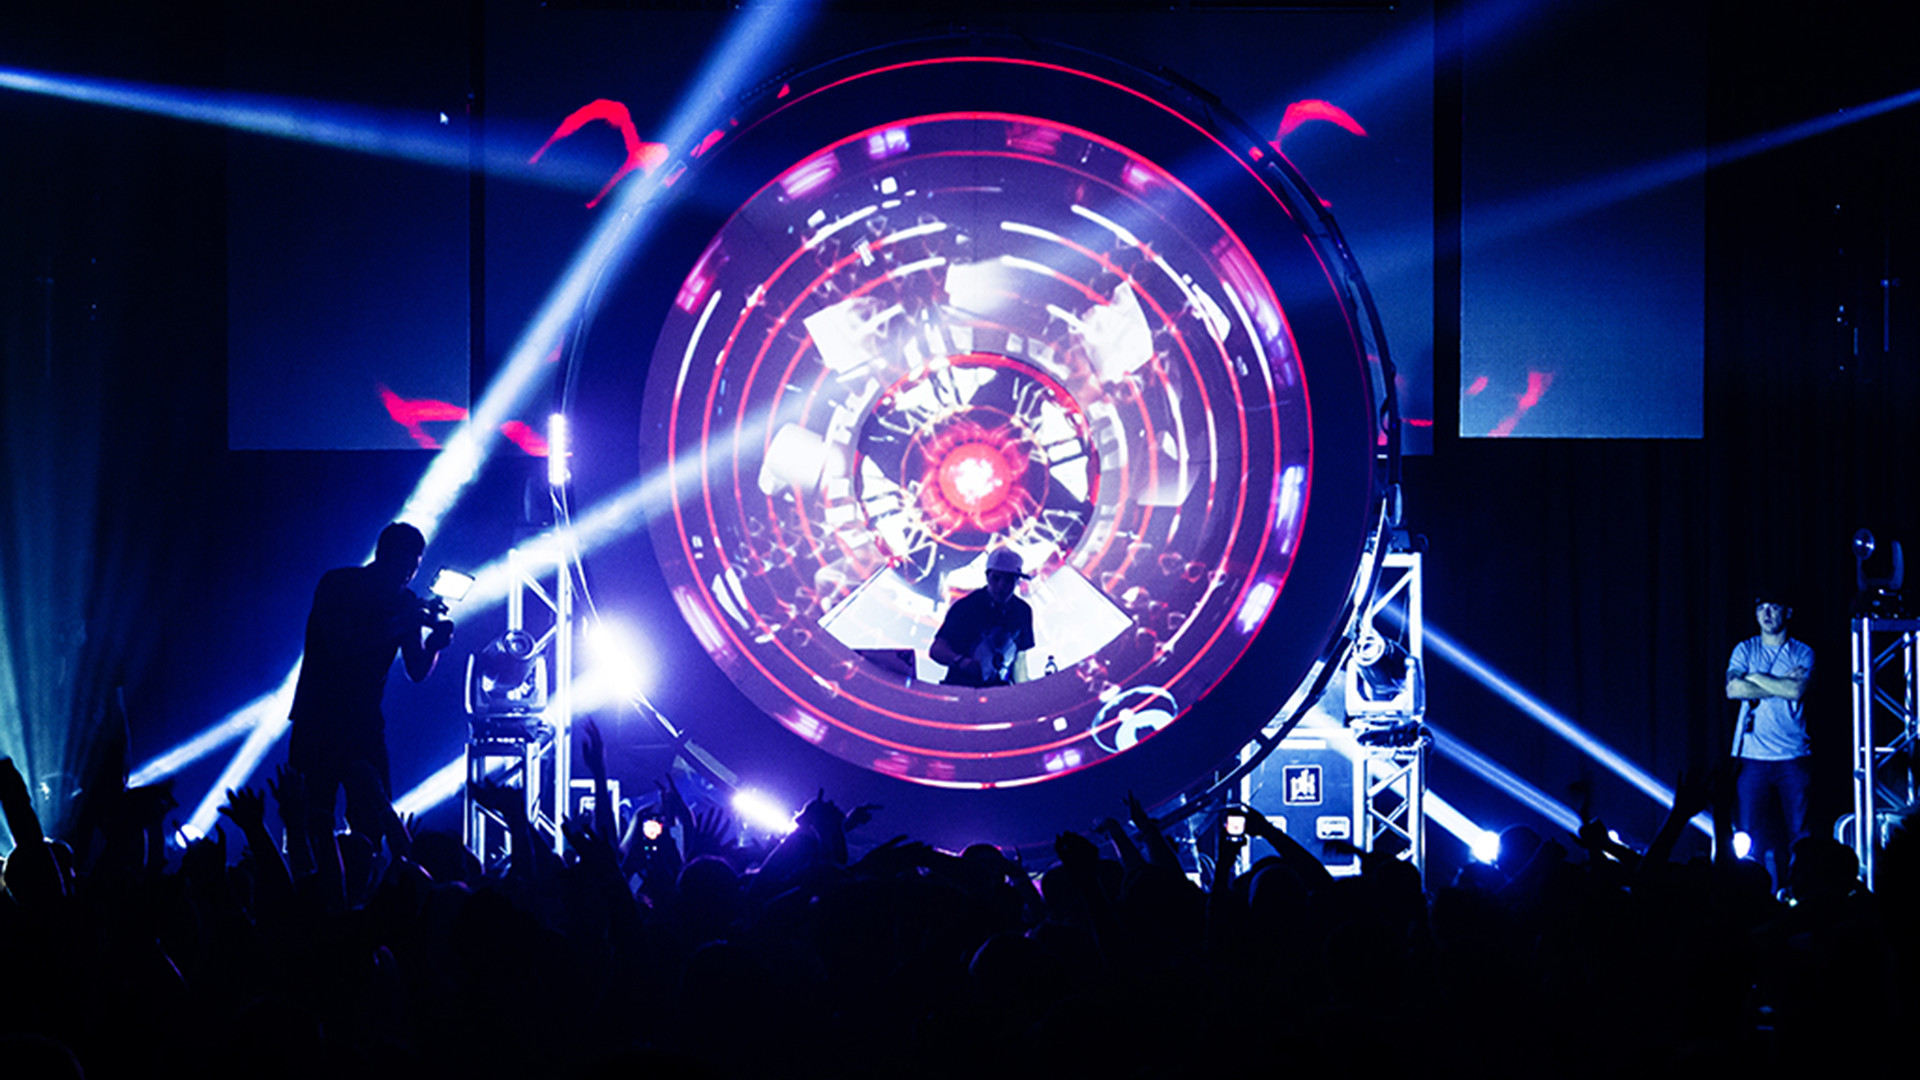 1920x1080 Datsik certainly suffered in popularity once the Dubstep wave ended, but  his stage setup was one of the most memorable things I saw from that time.